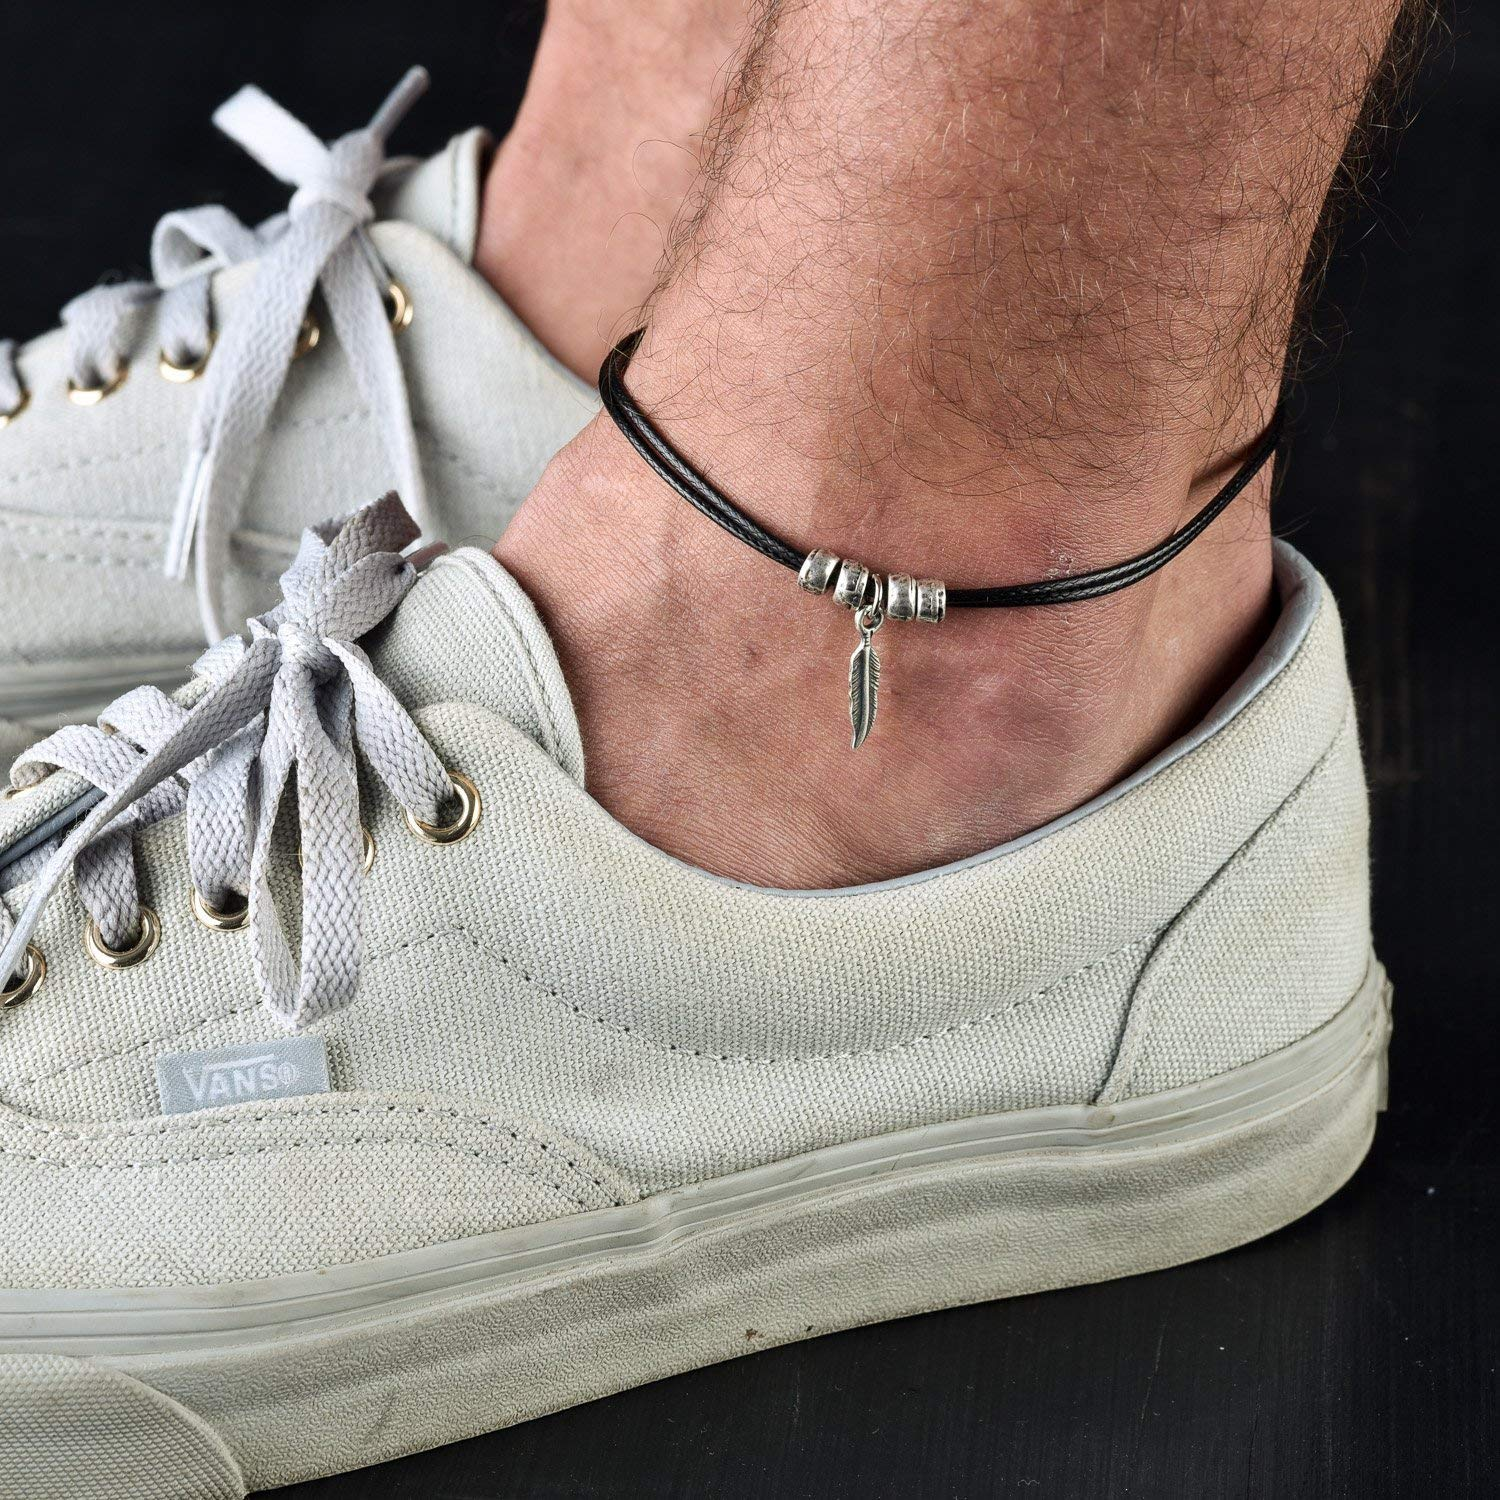 Handmade Black Anklet For Men Set With Silver Plated Feather Pendant By Galis Jewelry - Ankle Bracelet For Men - Feather Anklet For Men